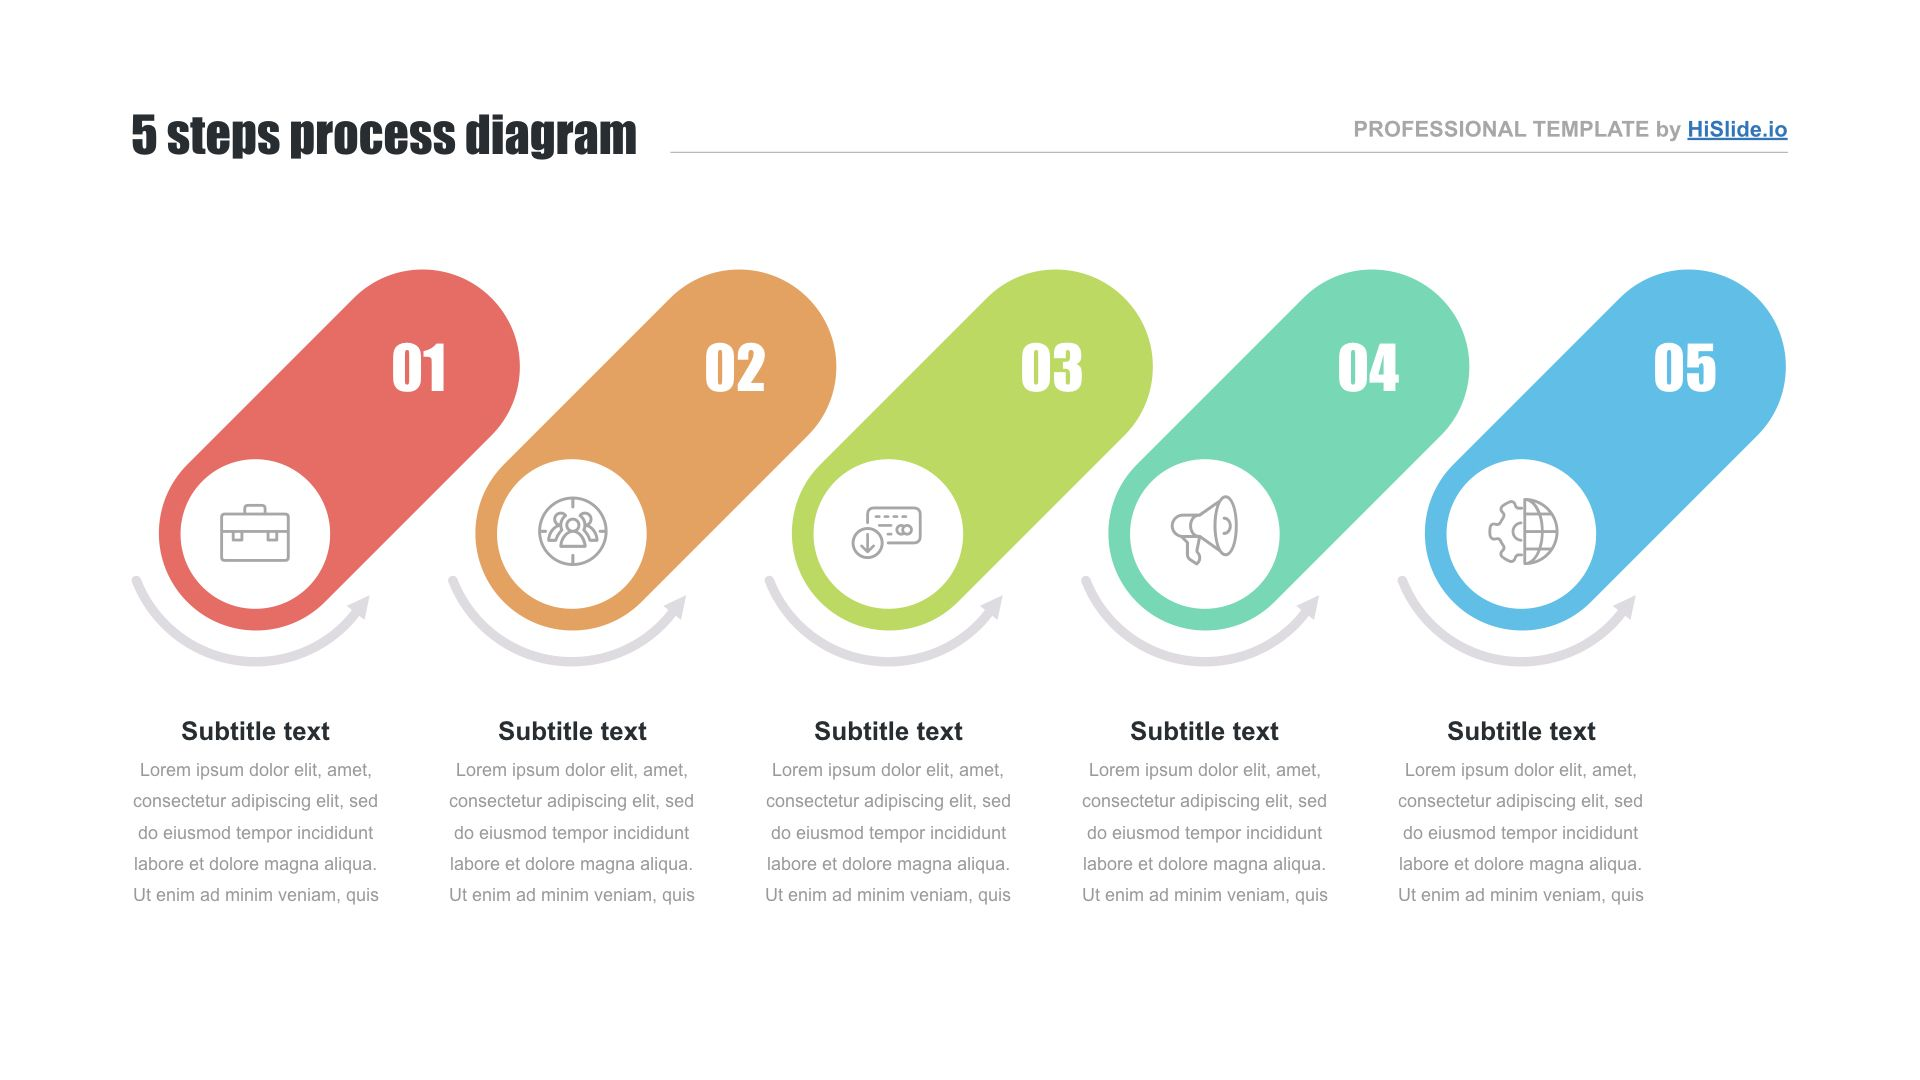 Powerpoint Process Diagram Hislide Io Download Now Powerpoint Flow Chart Template Powerpoint Presentation Templates